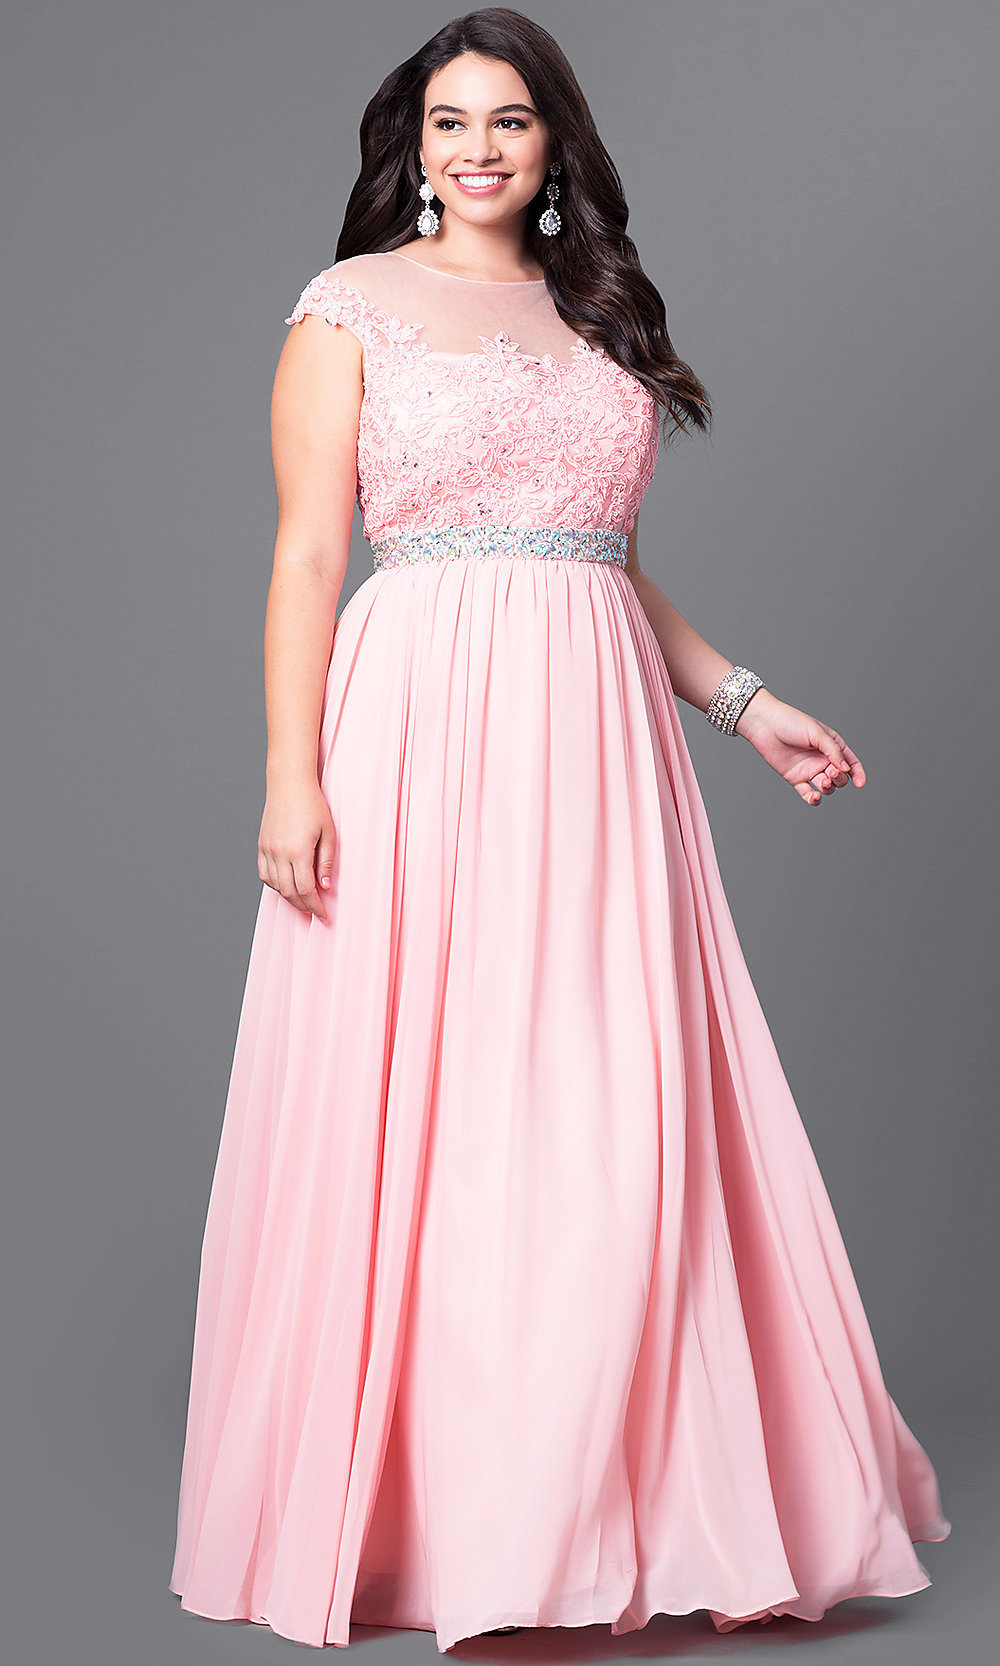 Illusion Plus Size Prom Dress With Jewels Promgirl